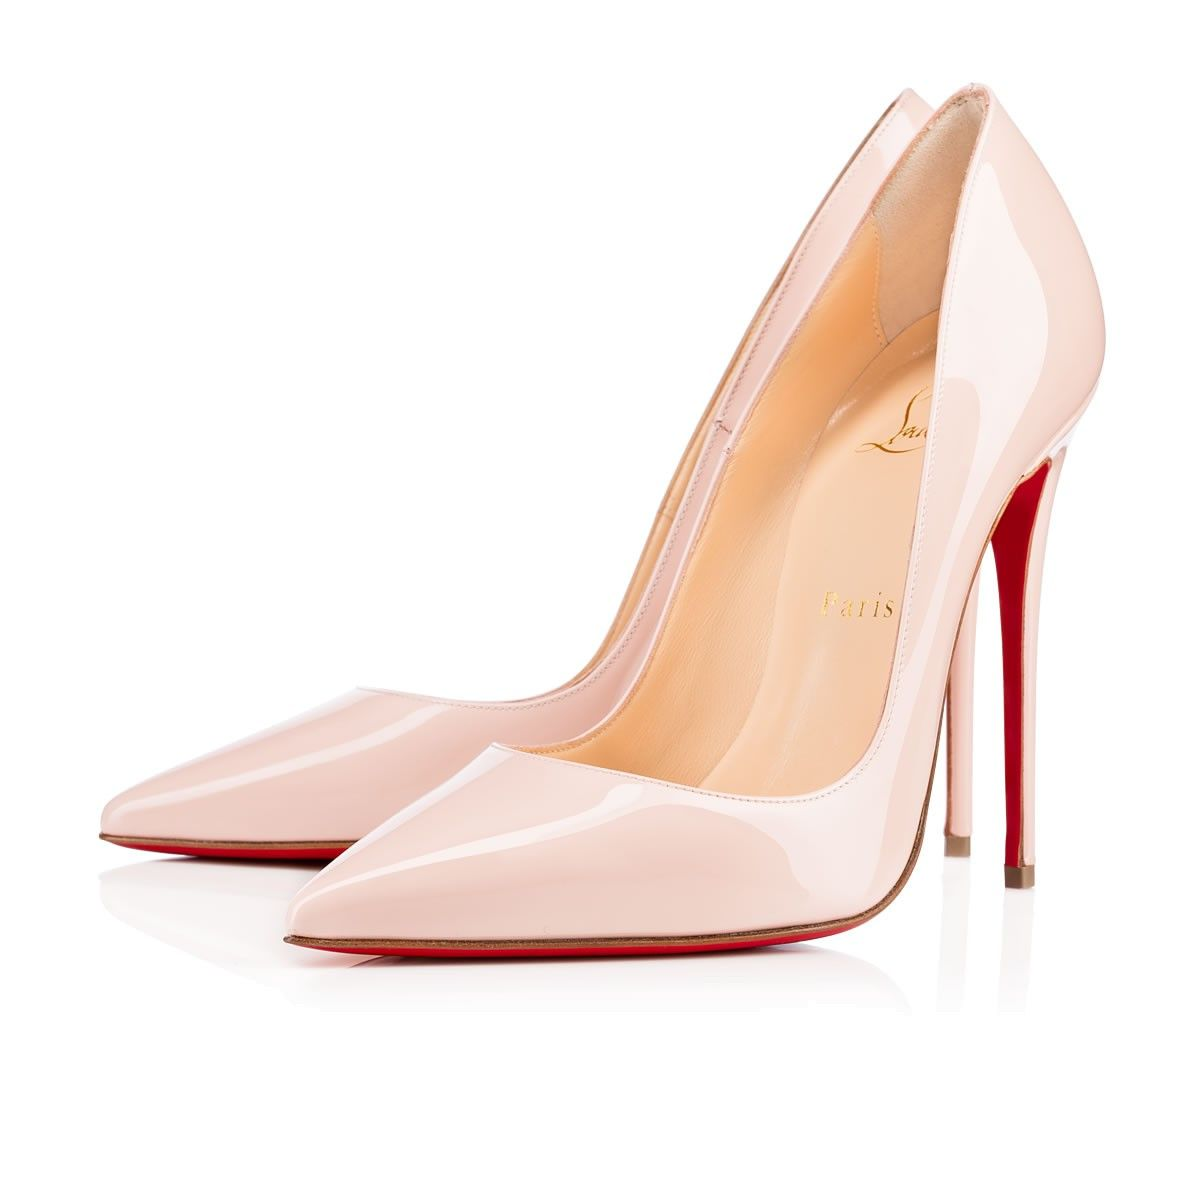 642e98dbe228 Shoes - So Kate - Christian Louboutin